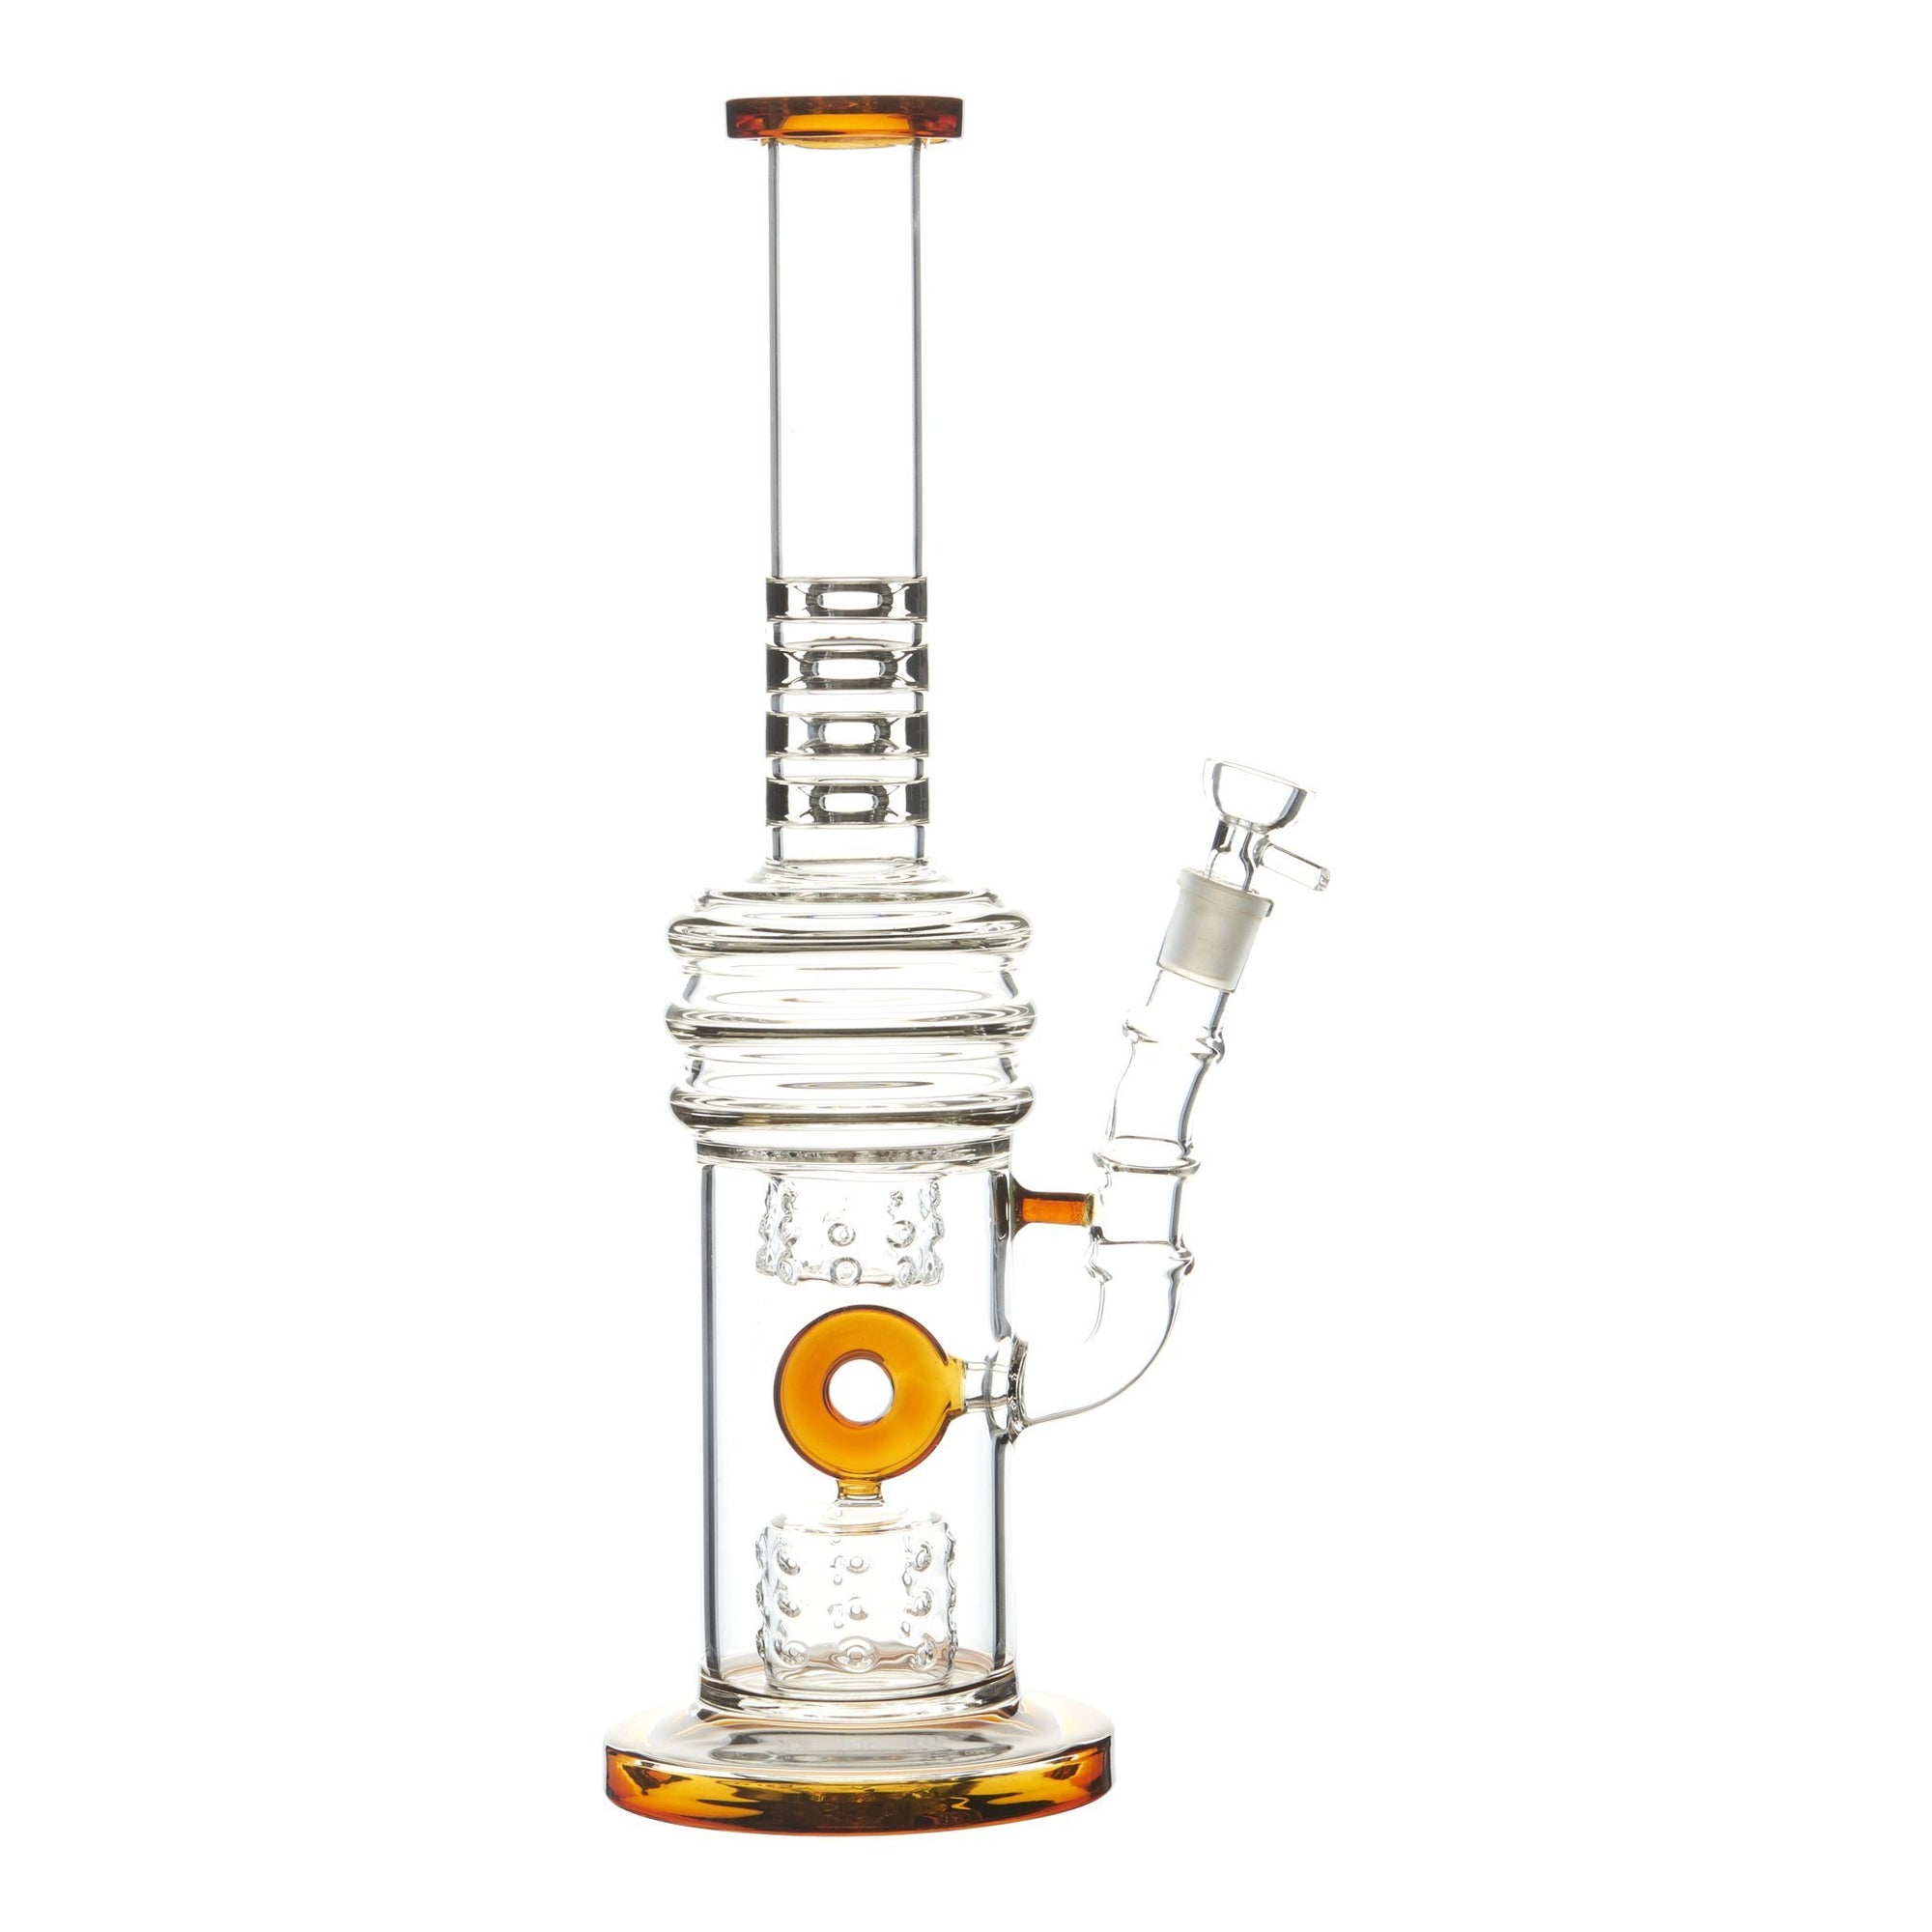 Amber 15-inch glass bong smoking device donut downstem colorful accents sleek and classic look sturdy base